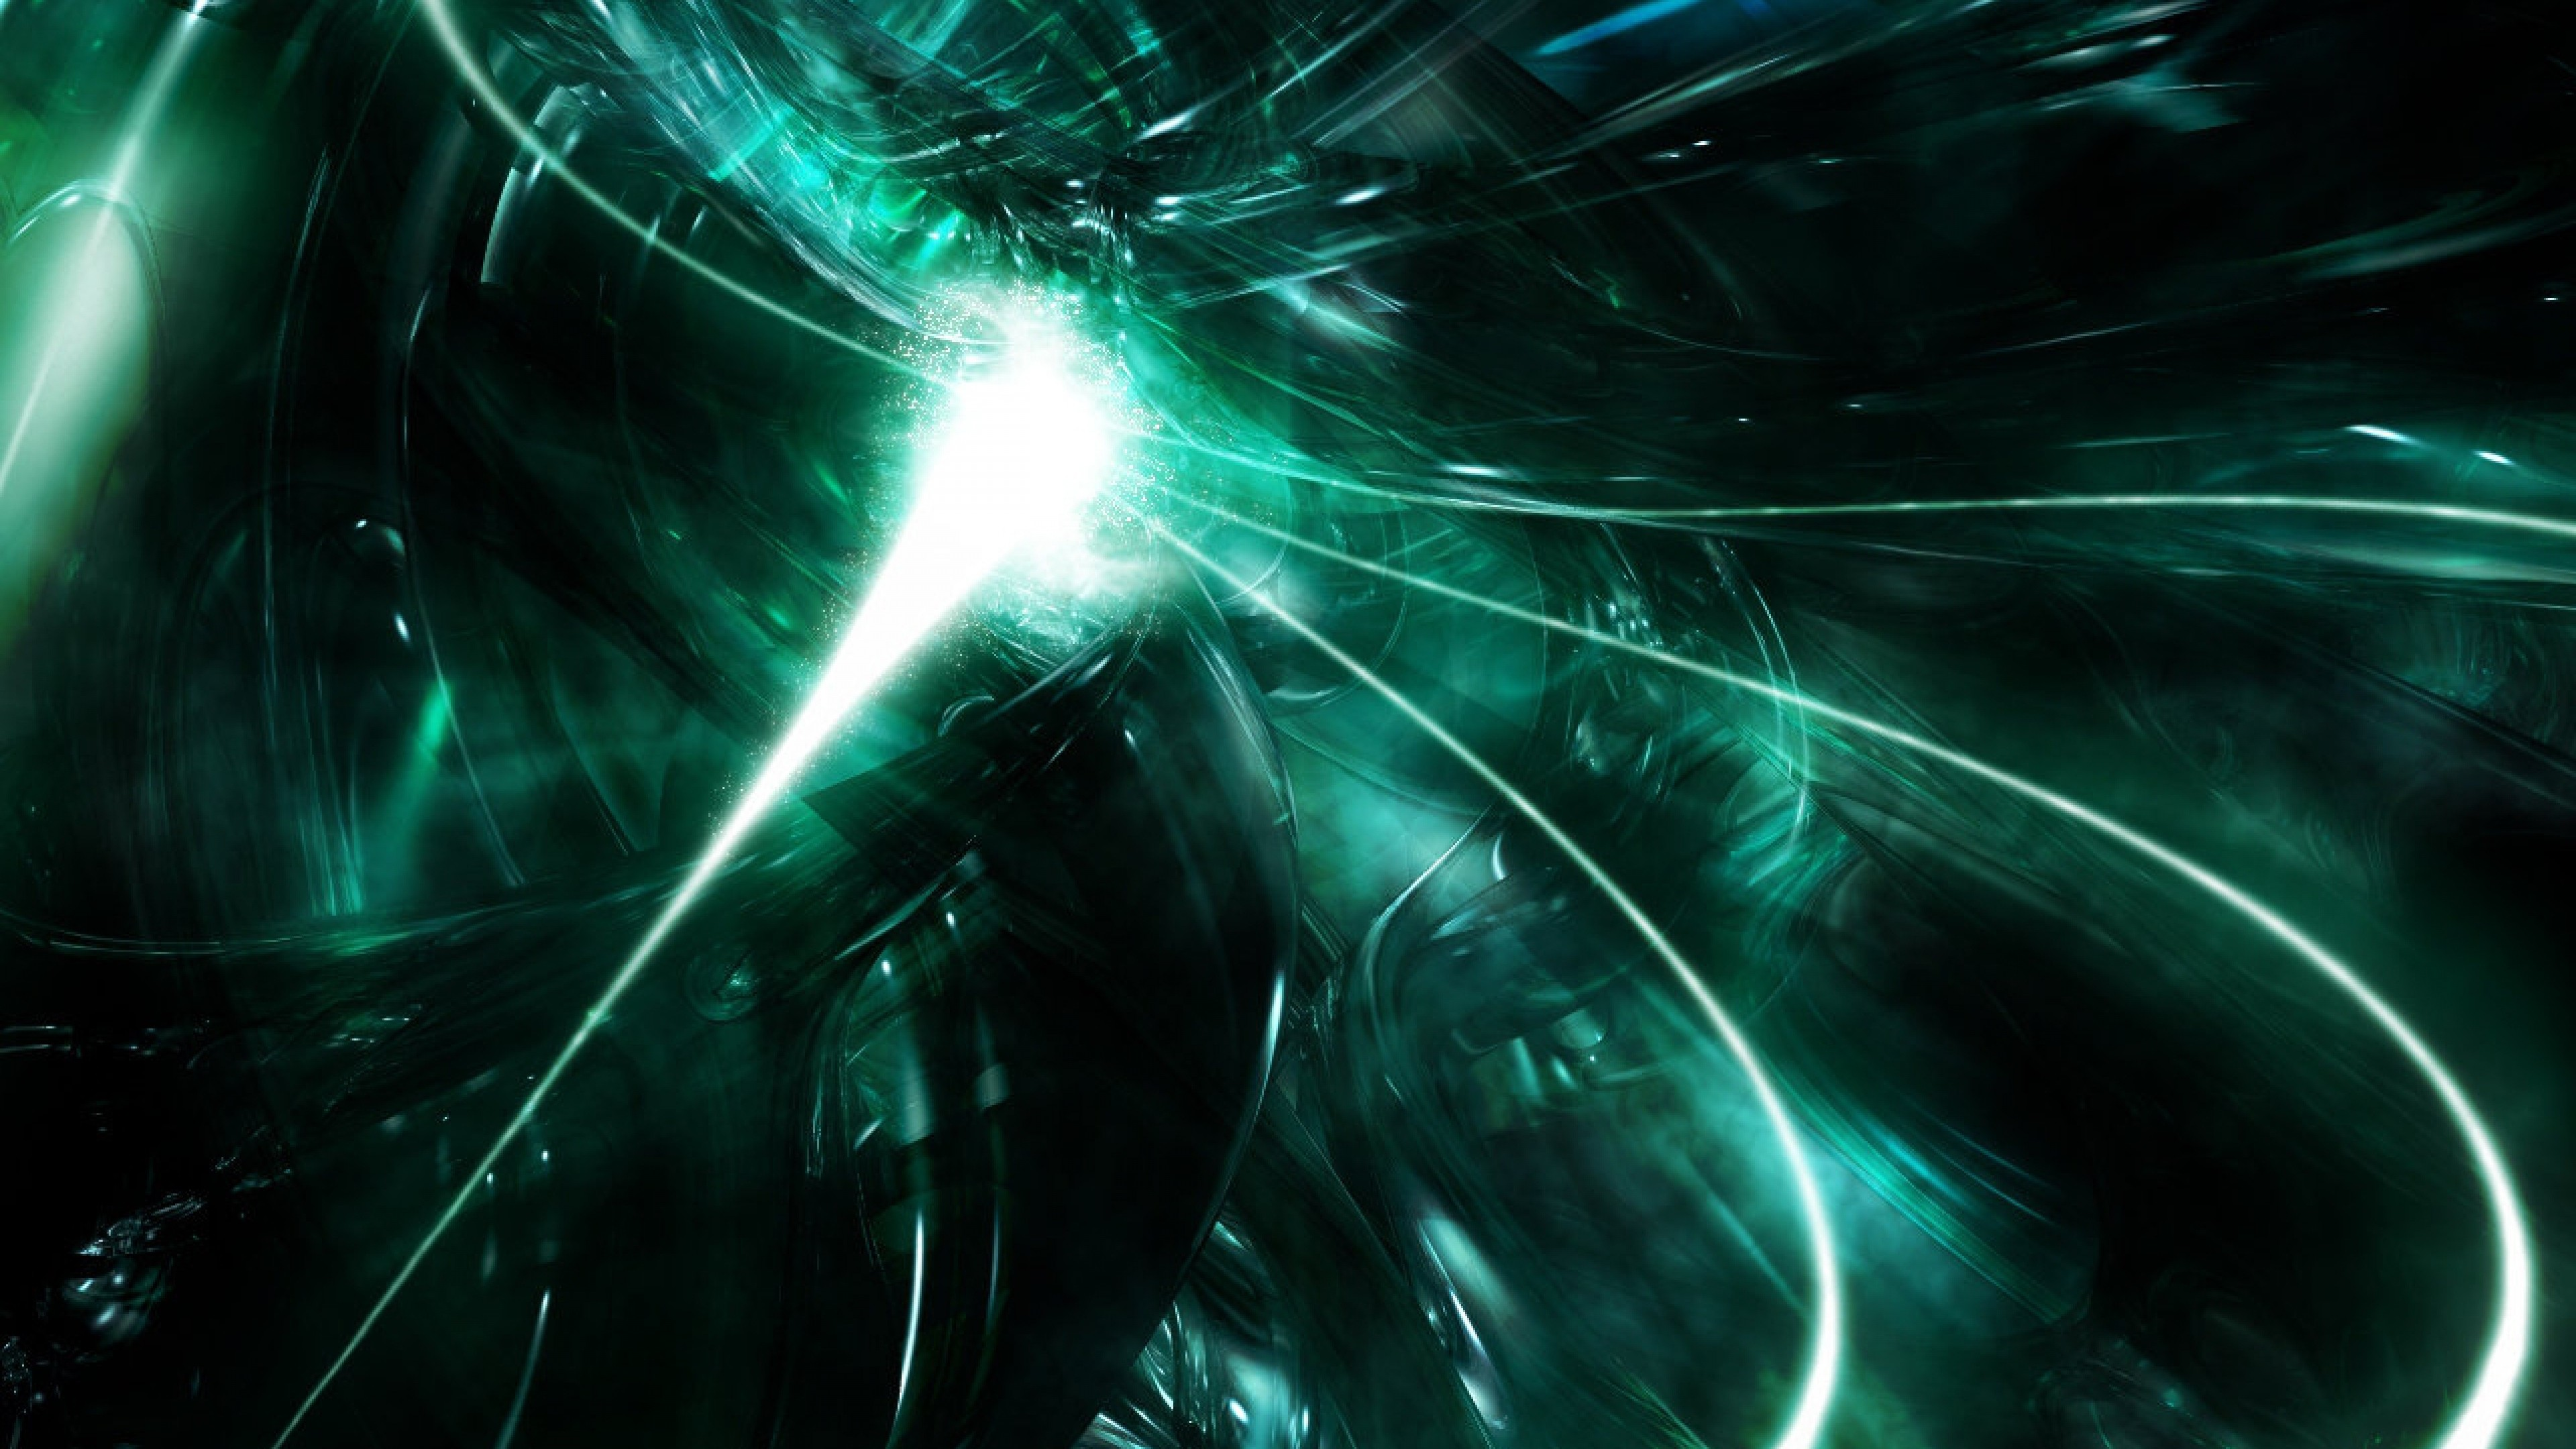 3840x2160  Wallpaper abstract, black, green, white